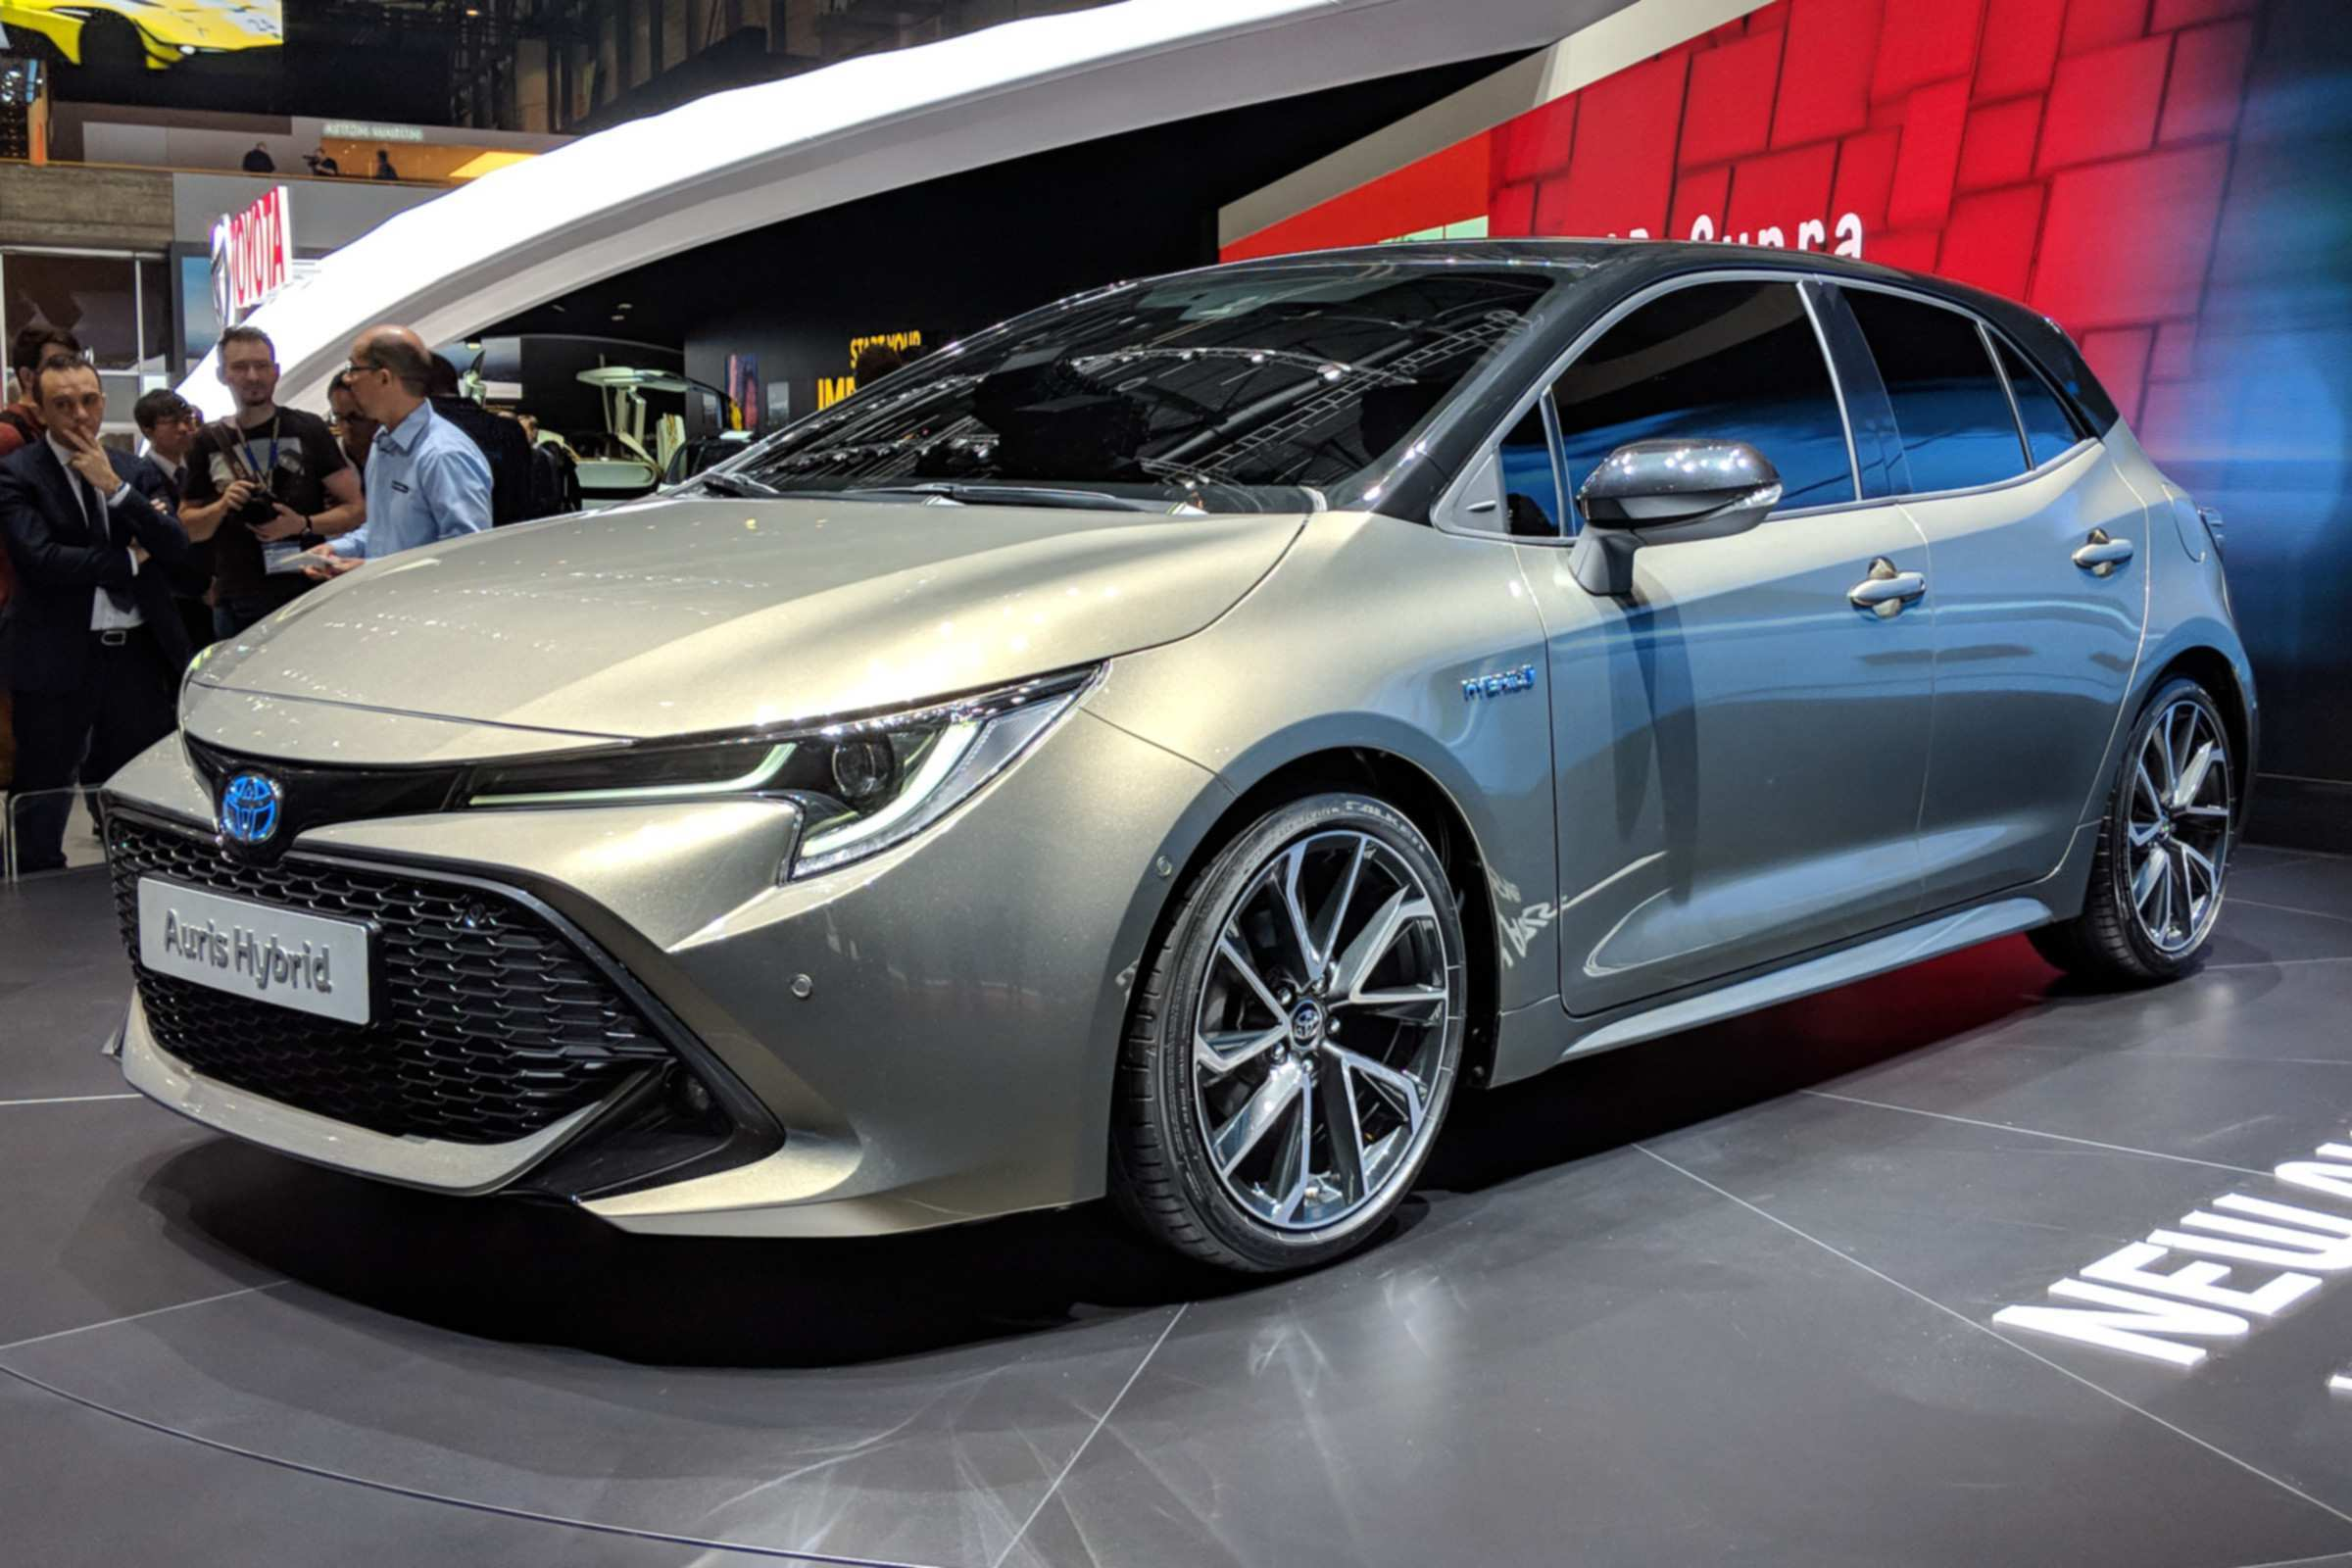 14 New Toyota Verso 2020 Price for Toyota Verso 2020